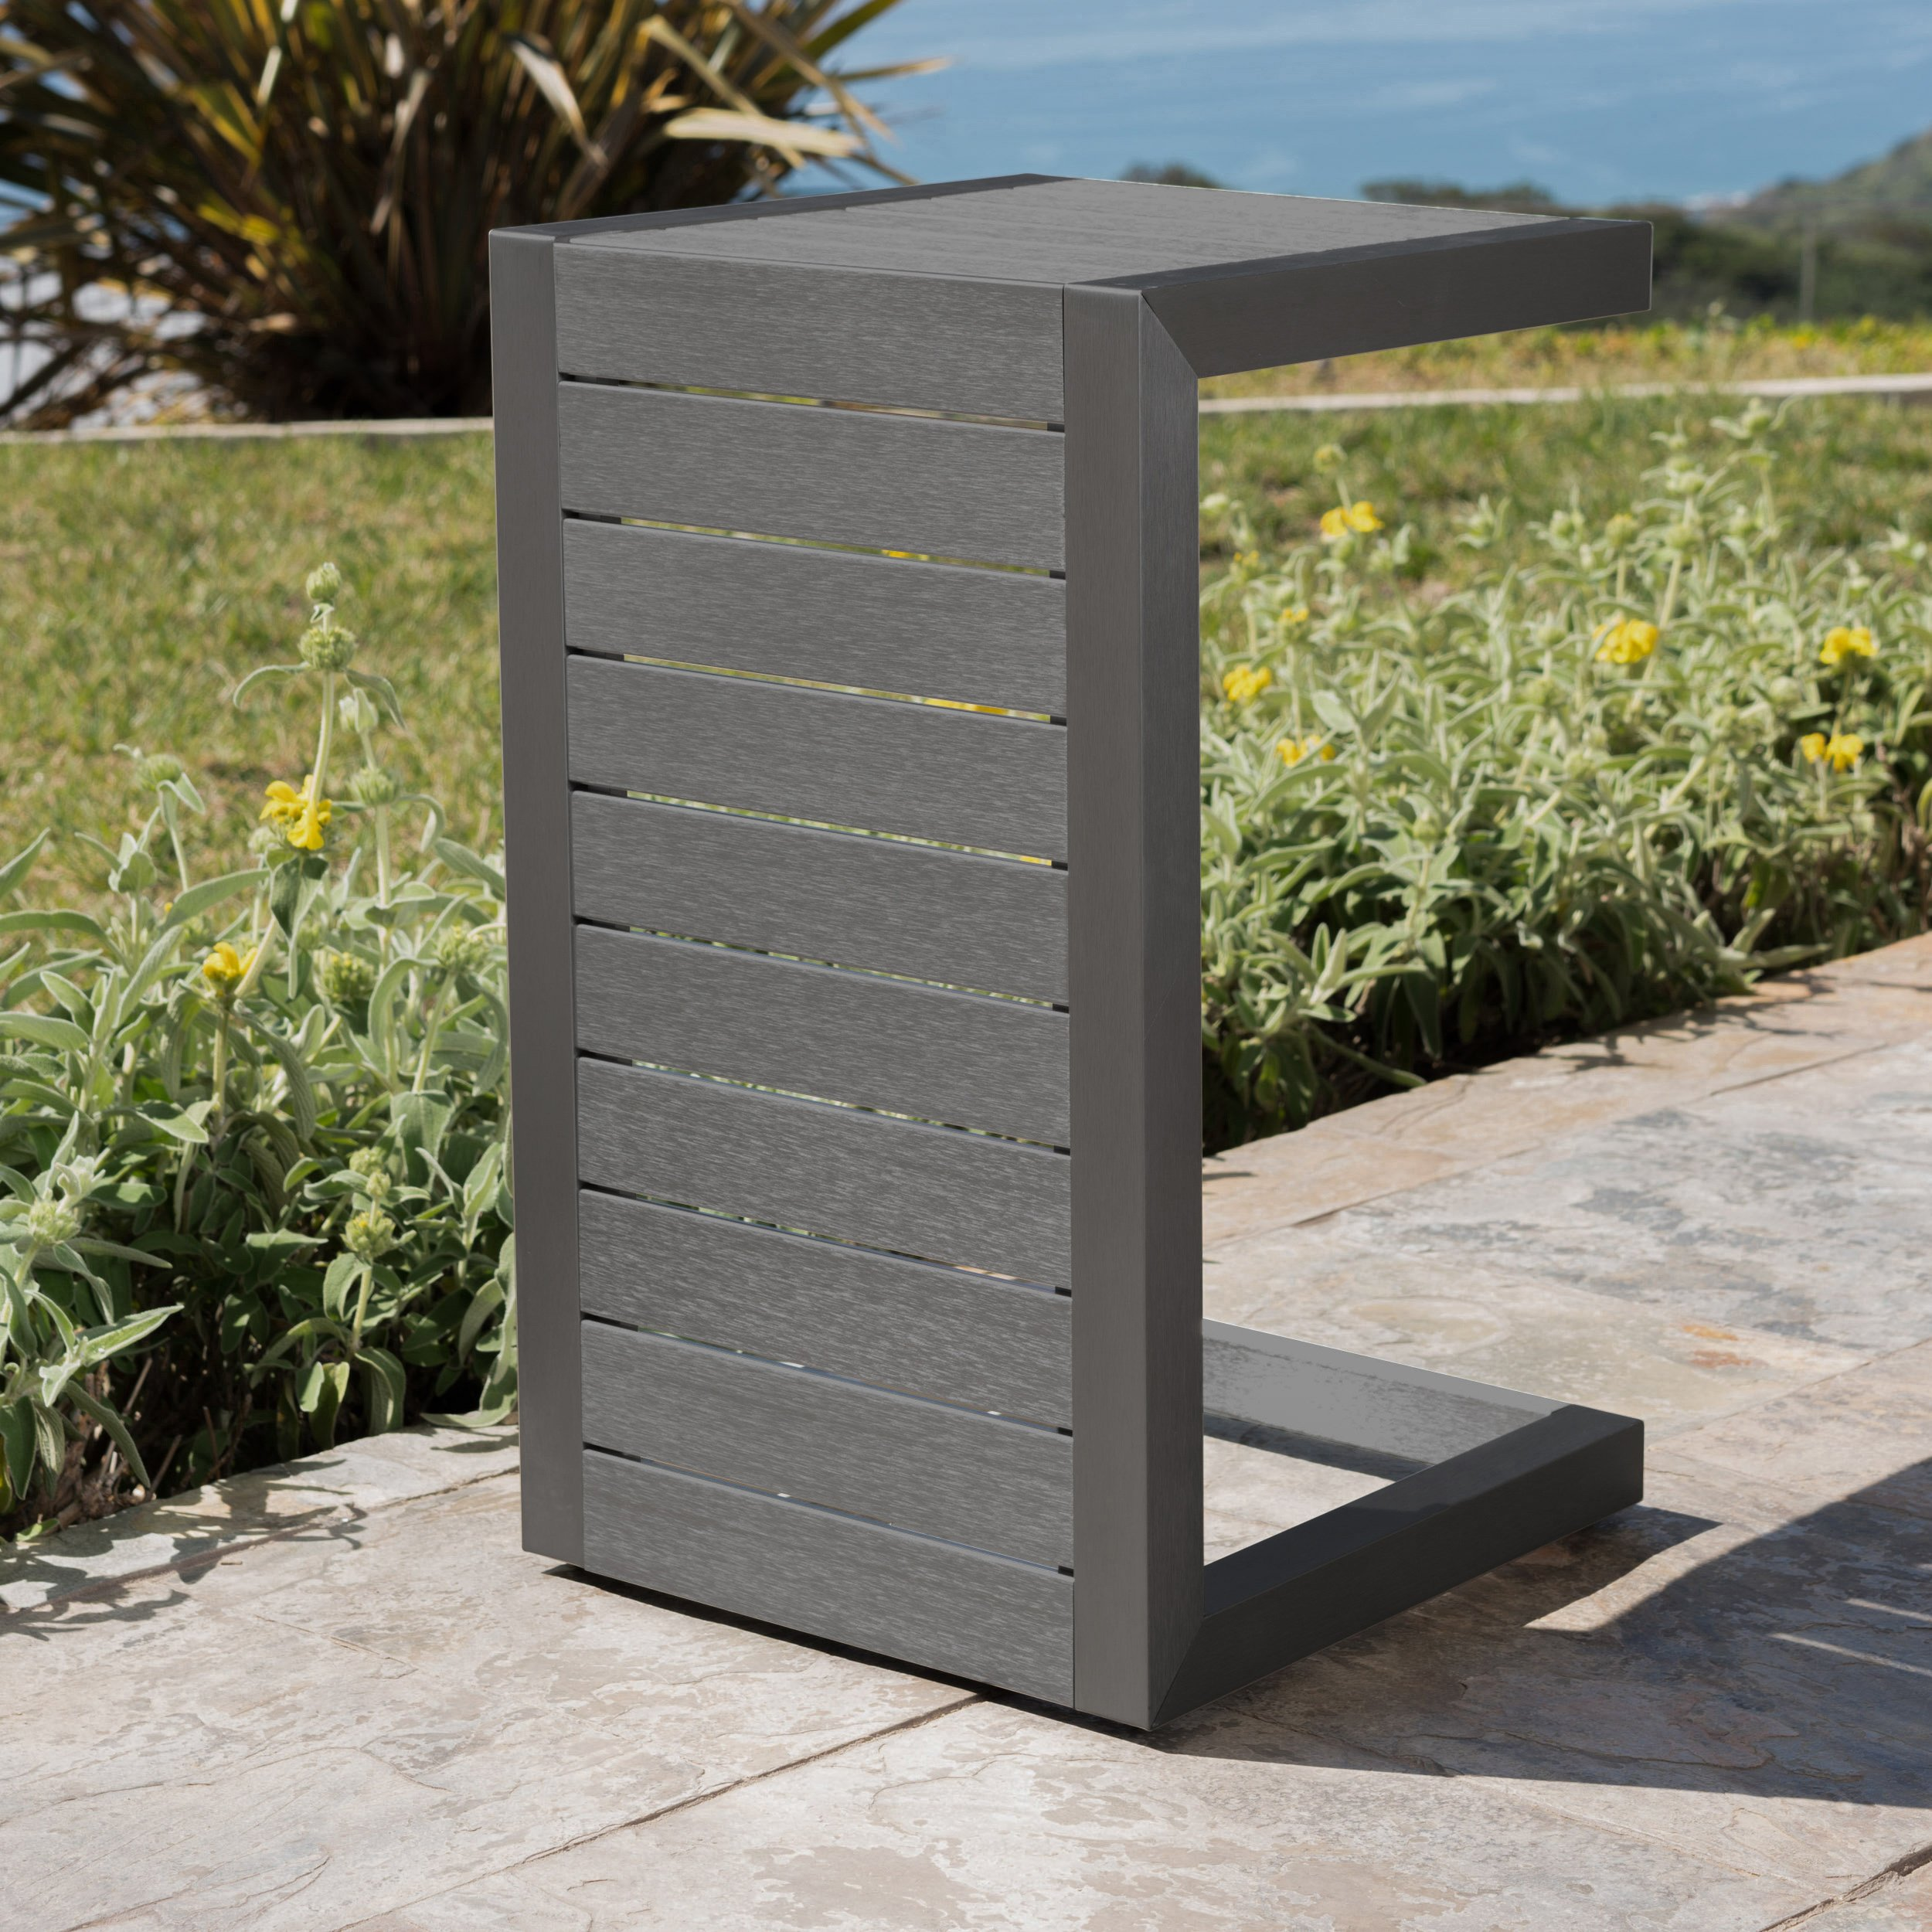 Crested Bay Patio Furniture | Outdoor Grey Aluminum C-Shaped Side Table